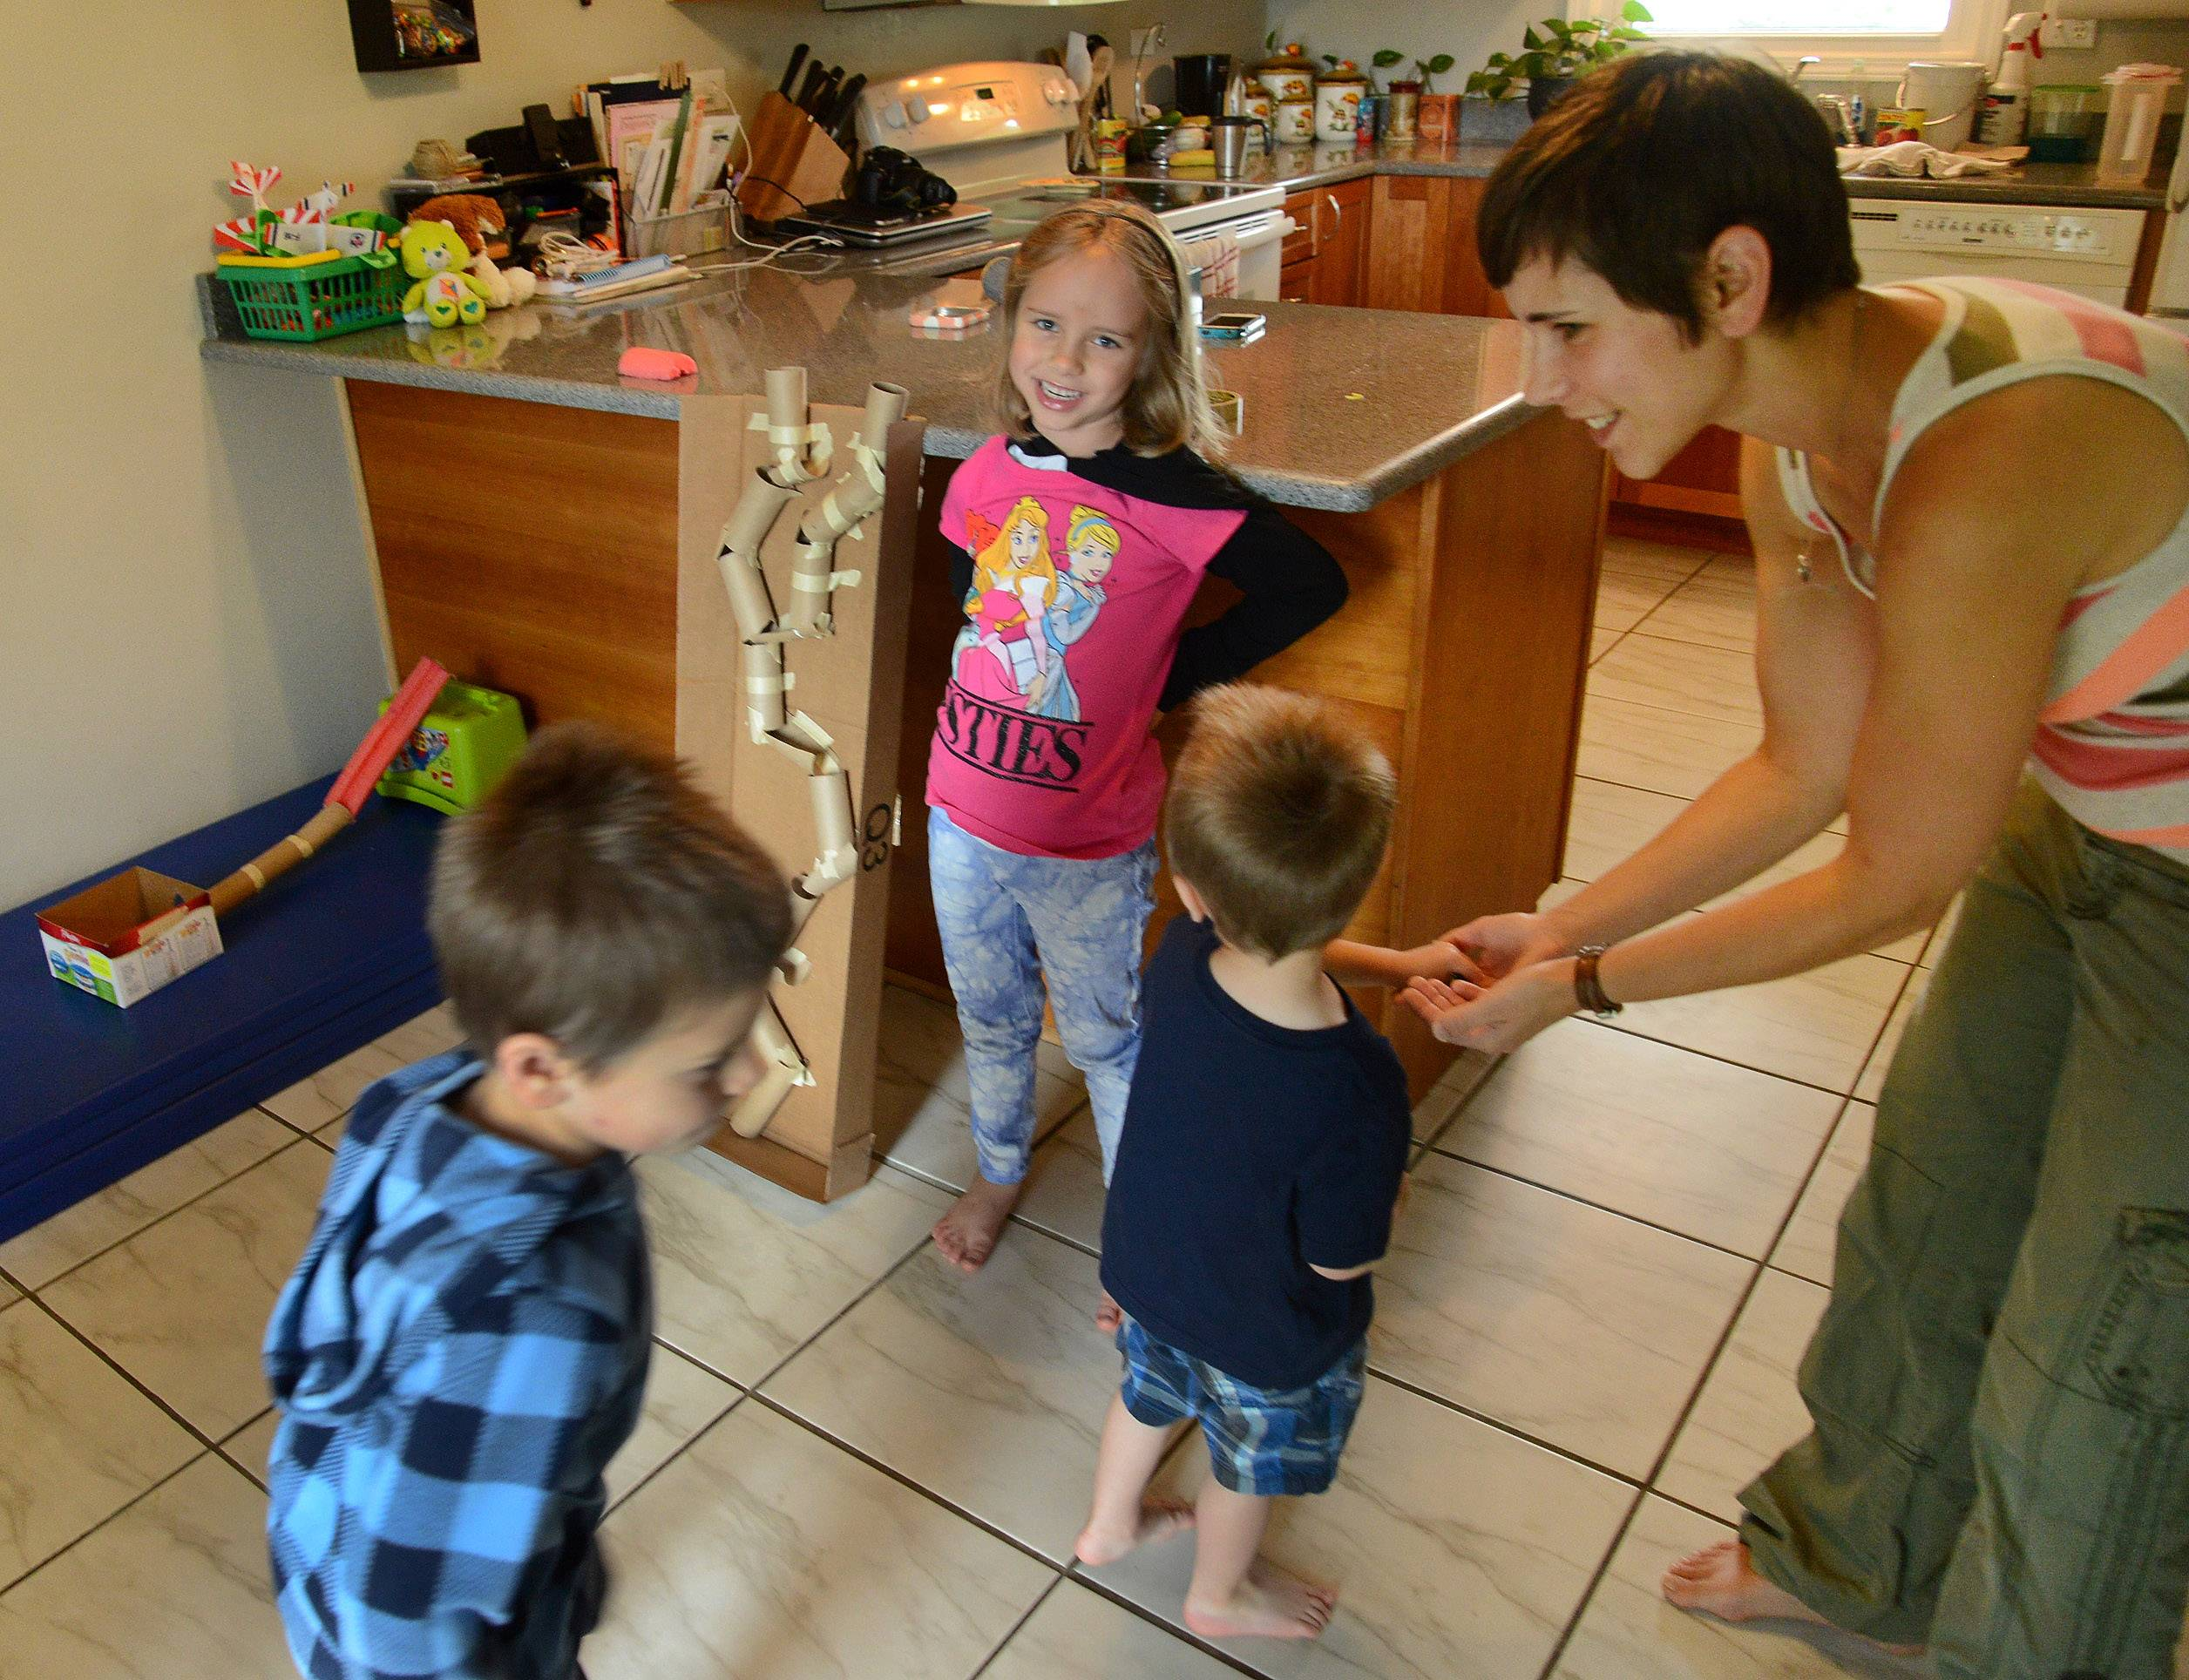 From left, Justin, 4, Lily, 6, Benjamin, 2, and mom Rebecca Anderson in their kitchen with their marble runs.